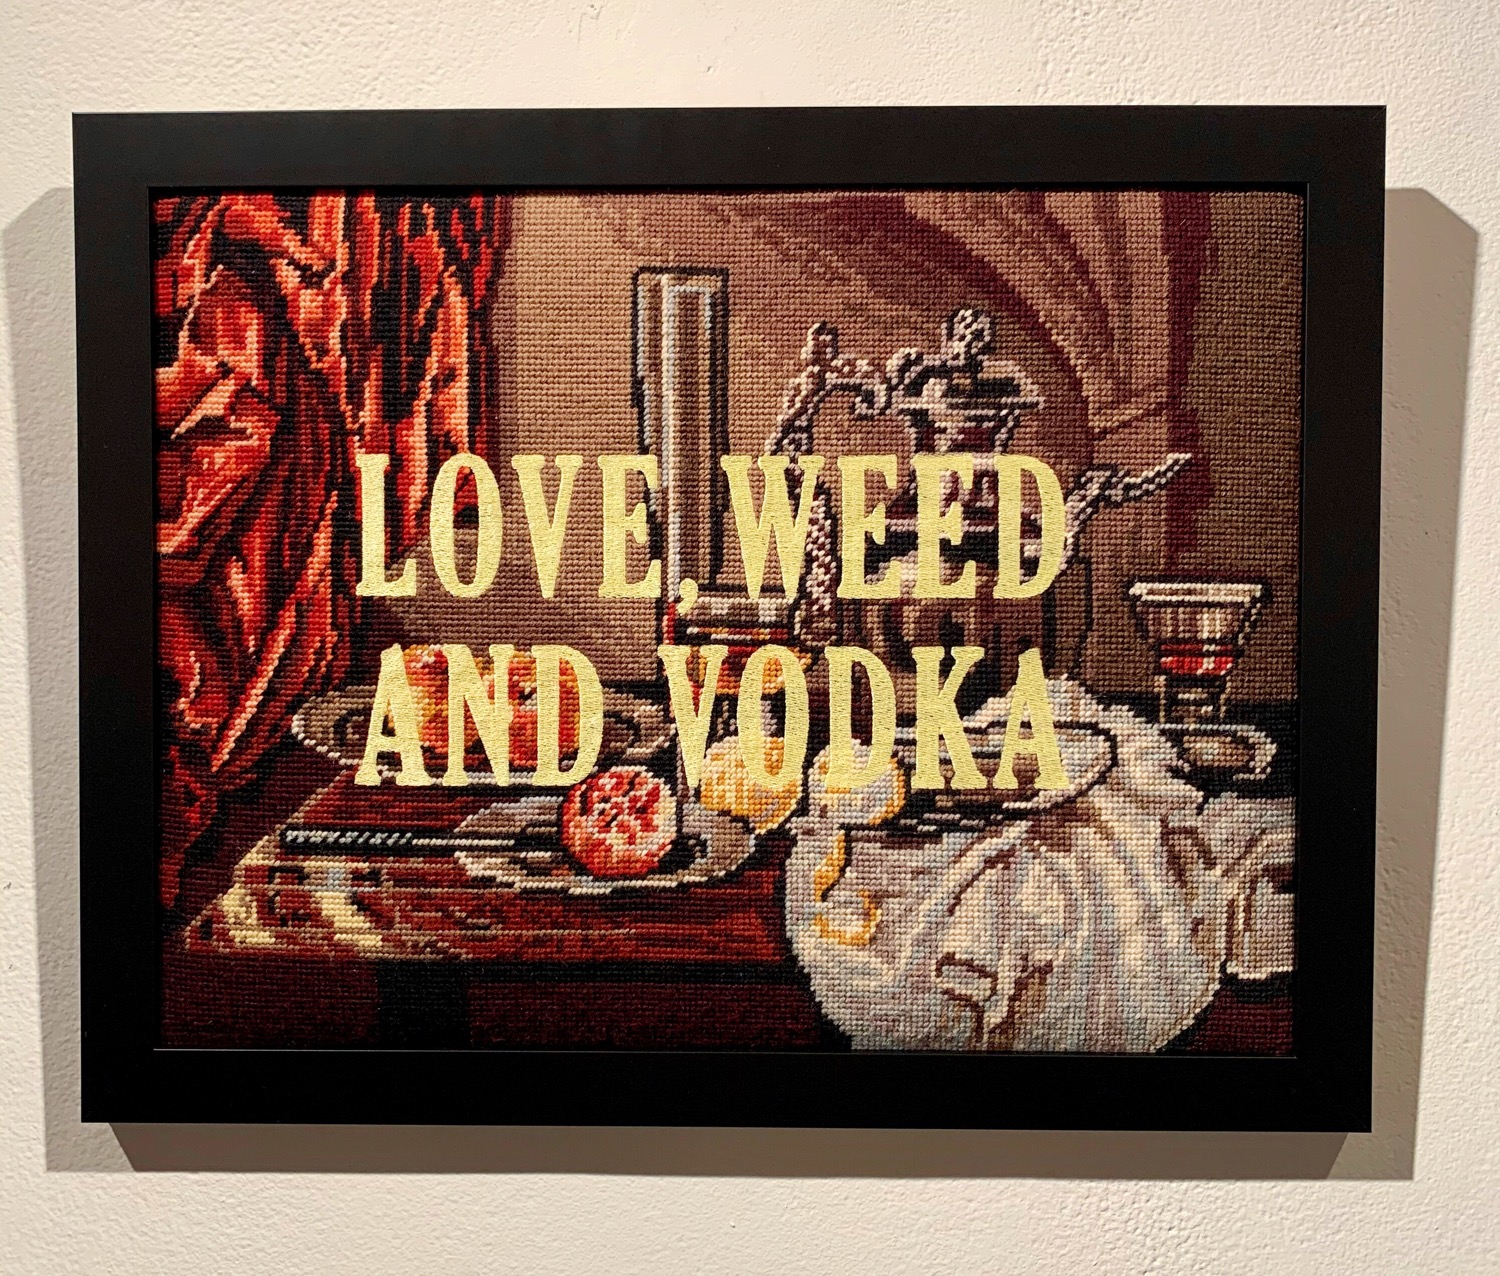 Love, weed and vodka